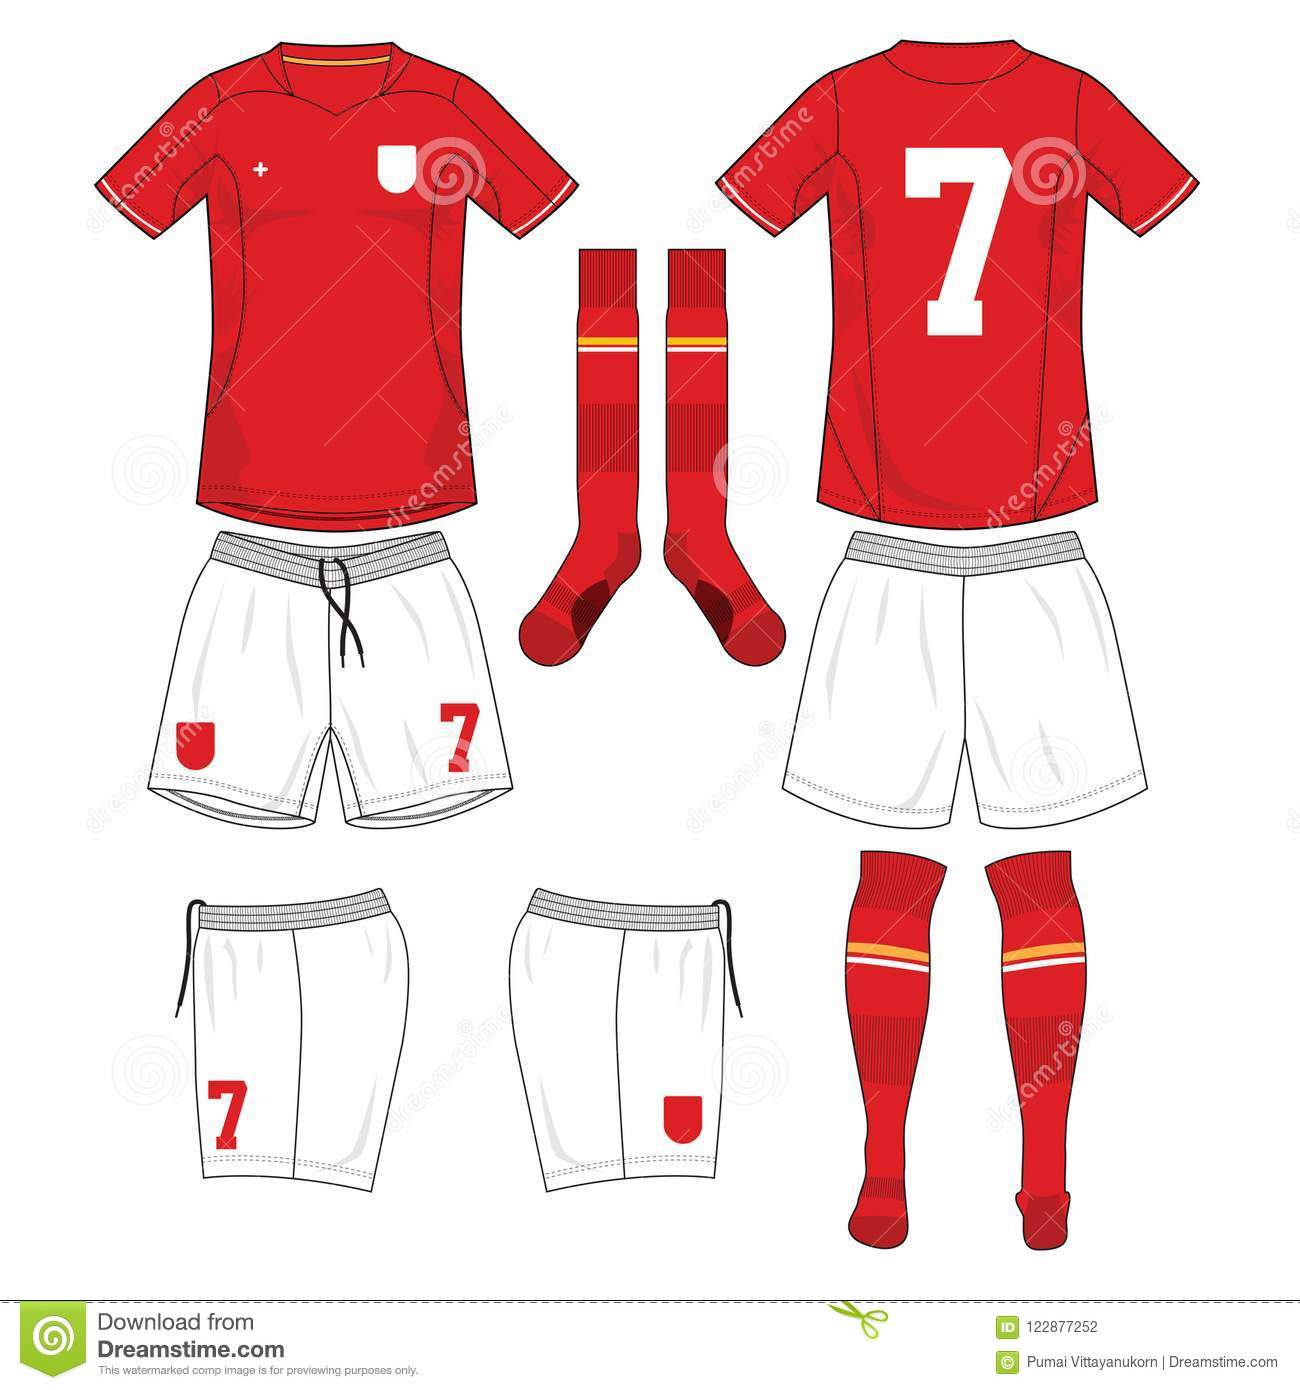 ae654fd15 Soccer jersey or football kit template design for football team. Front and  back view soccer uniform. Football t shirt with sock and short mock up.